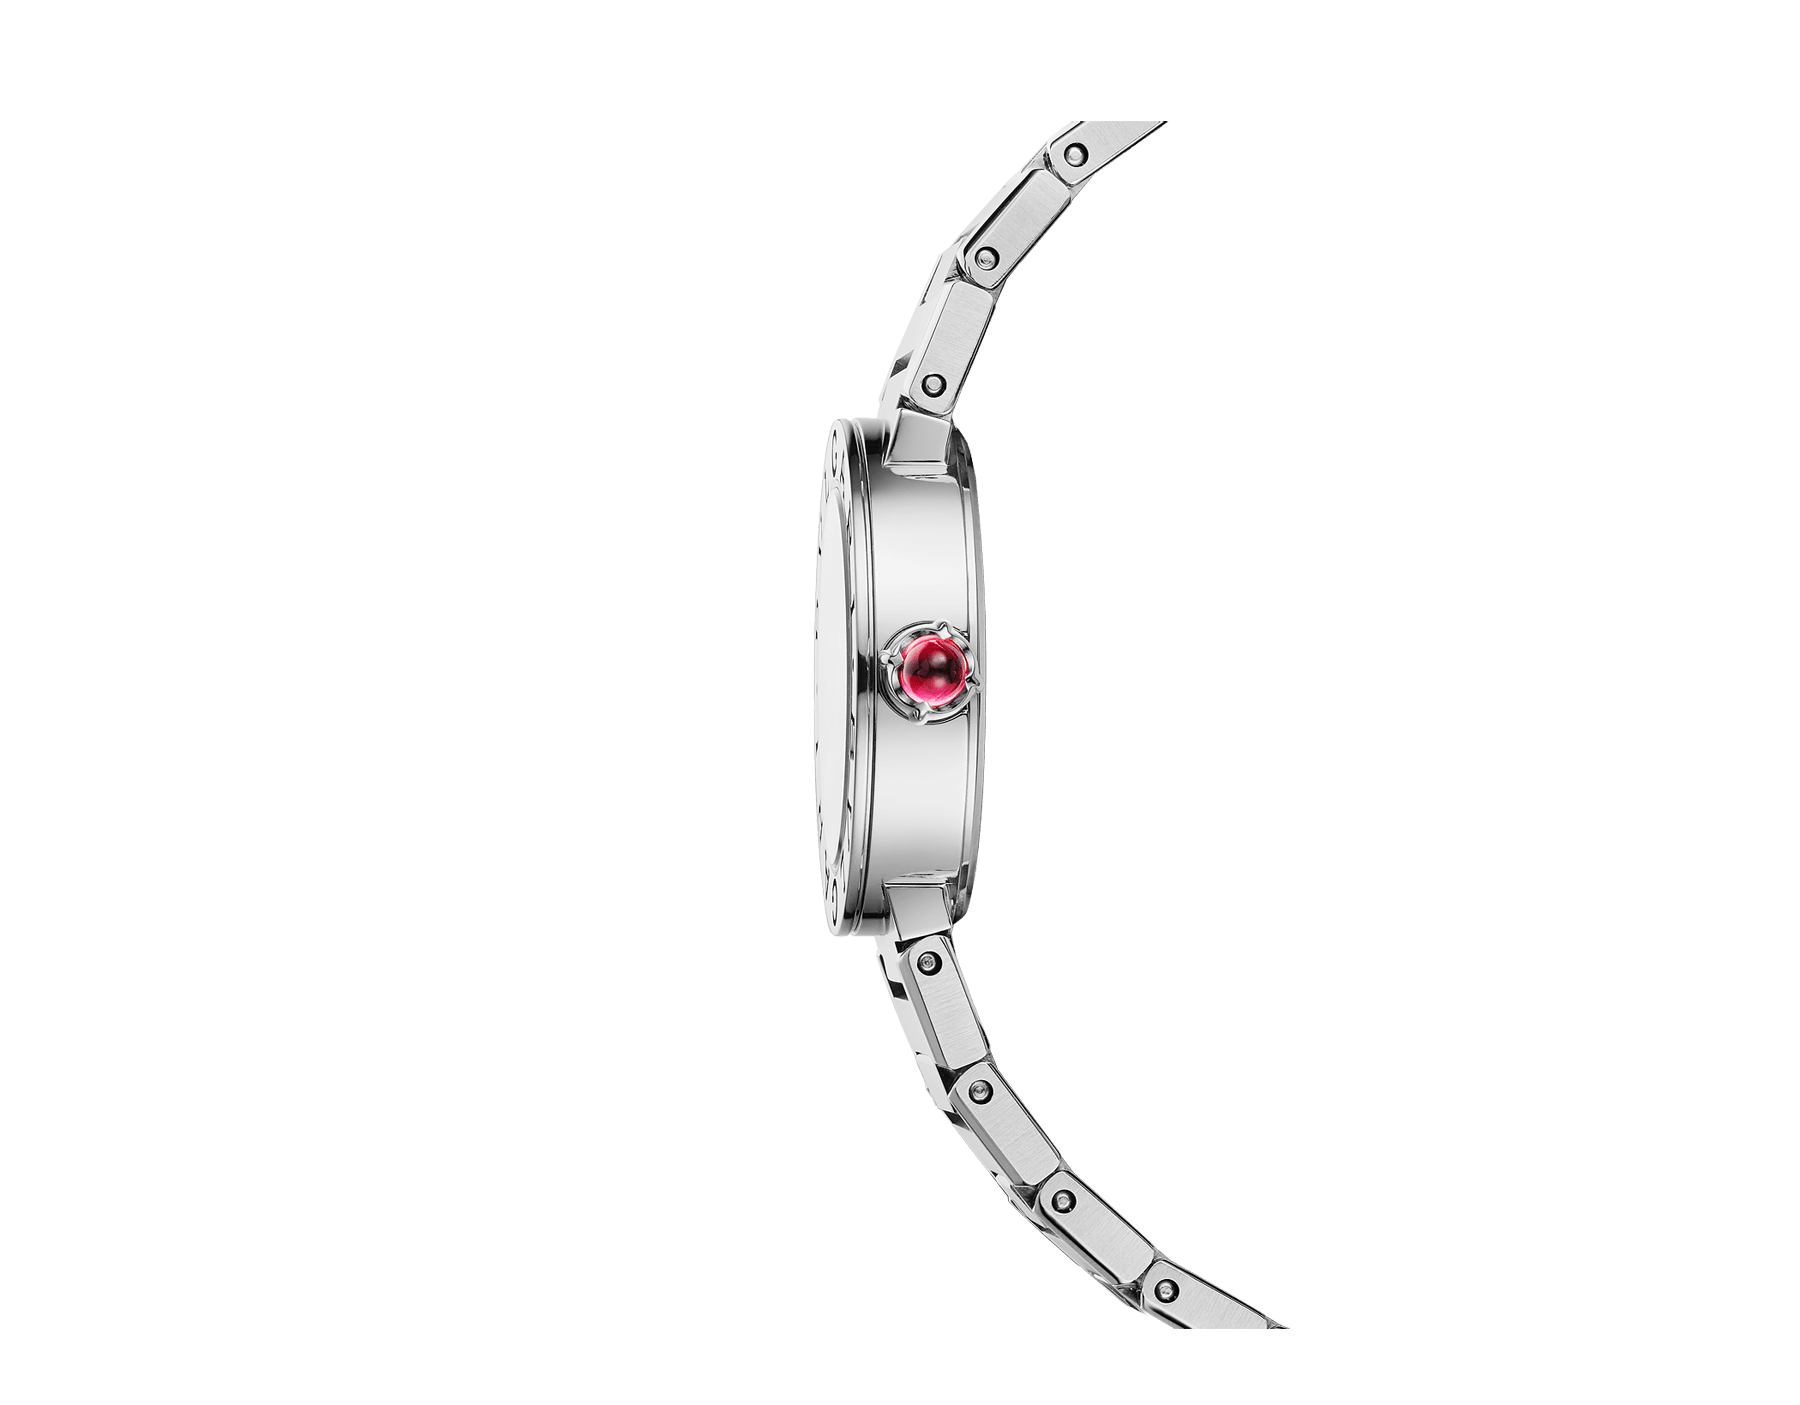 BVLGARI BVLGARI LADY watch in stainless steel case and bracelet, stainless steel bezel engraved with double logo and black lacquered dial 102943 image 2